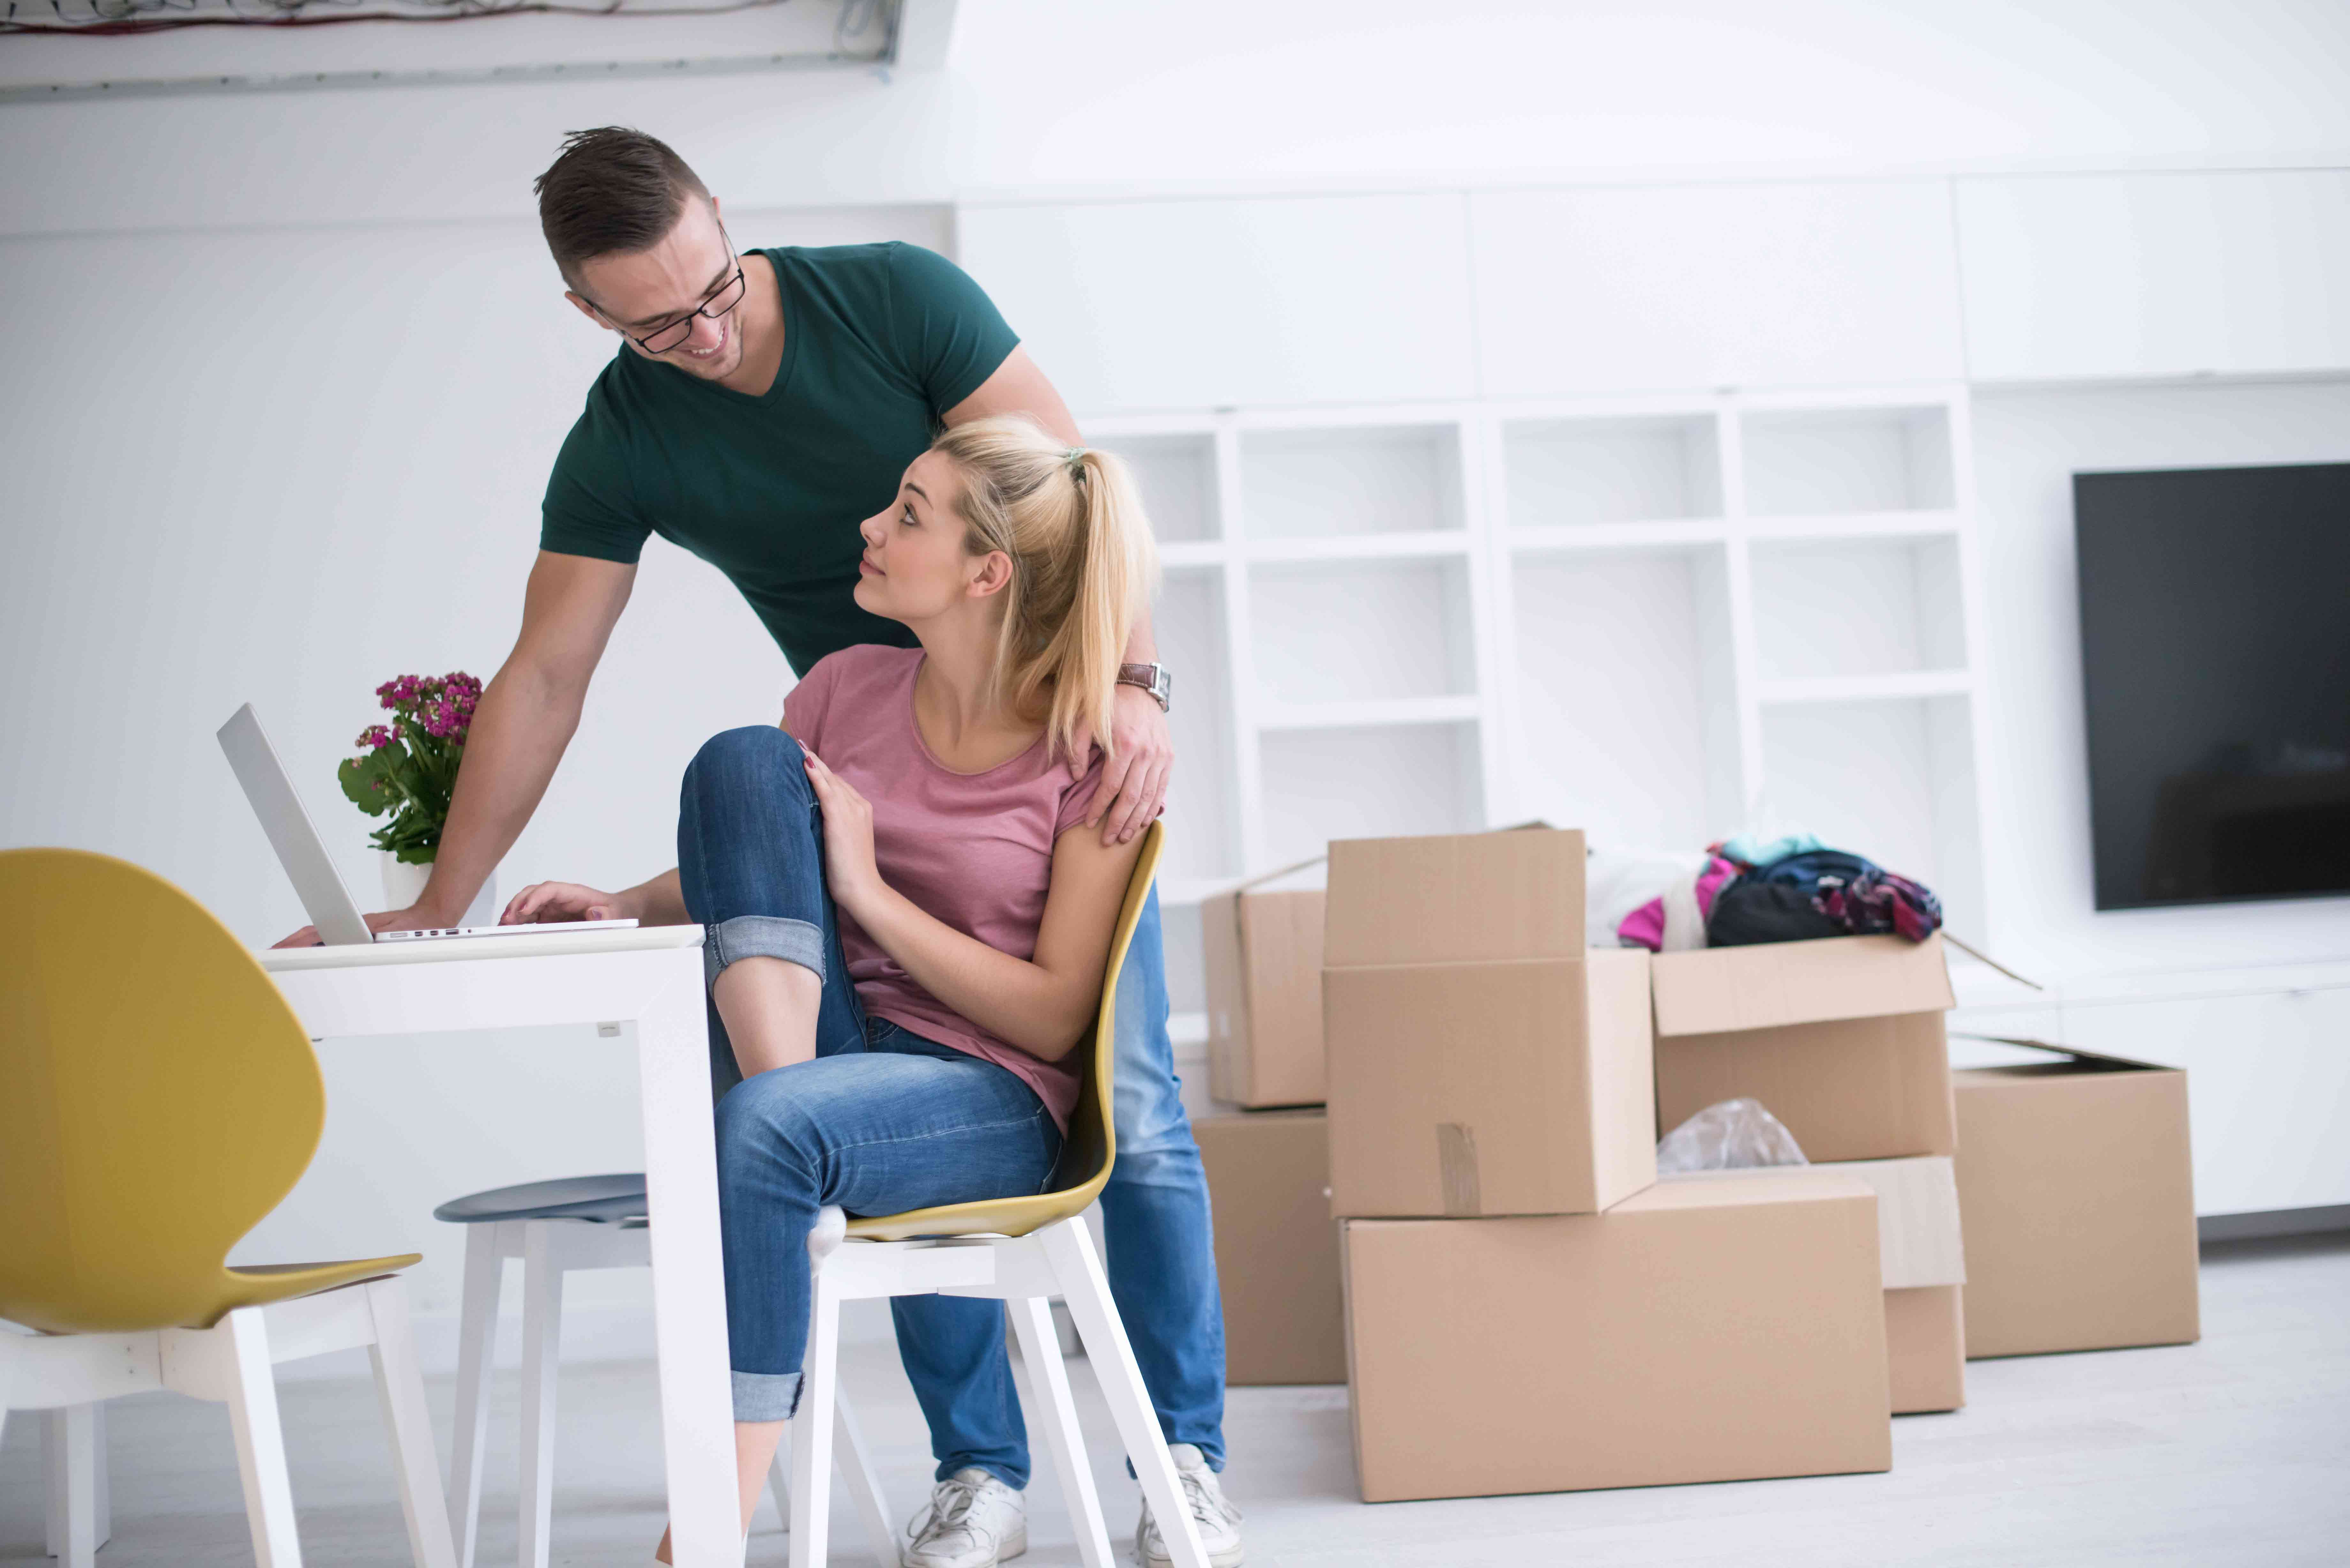 Young Buyers Are Dominating The Property Market: What Are Their Expectations?